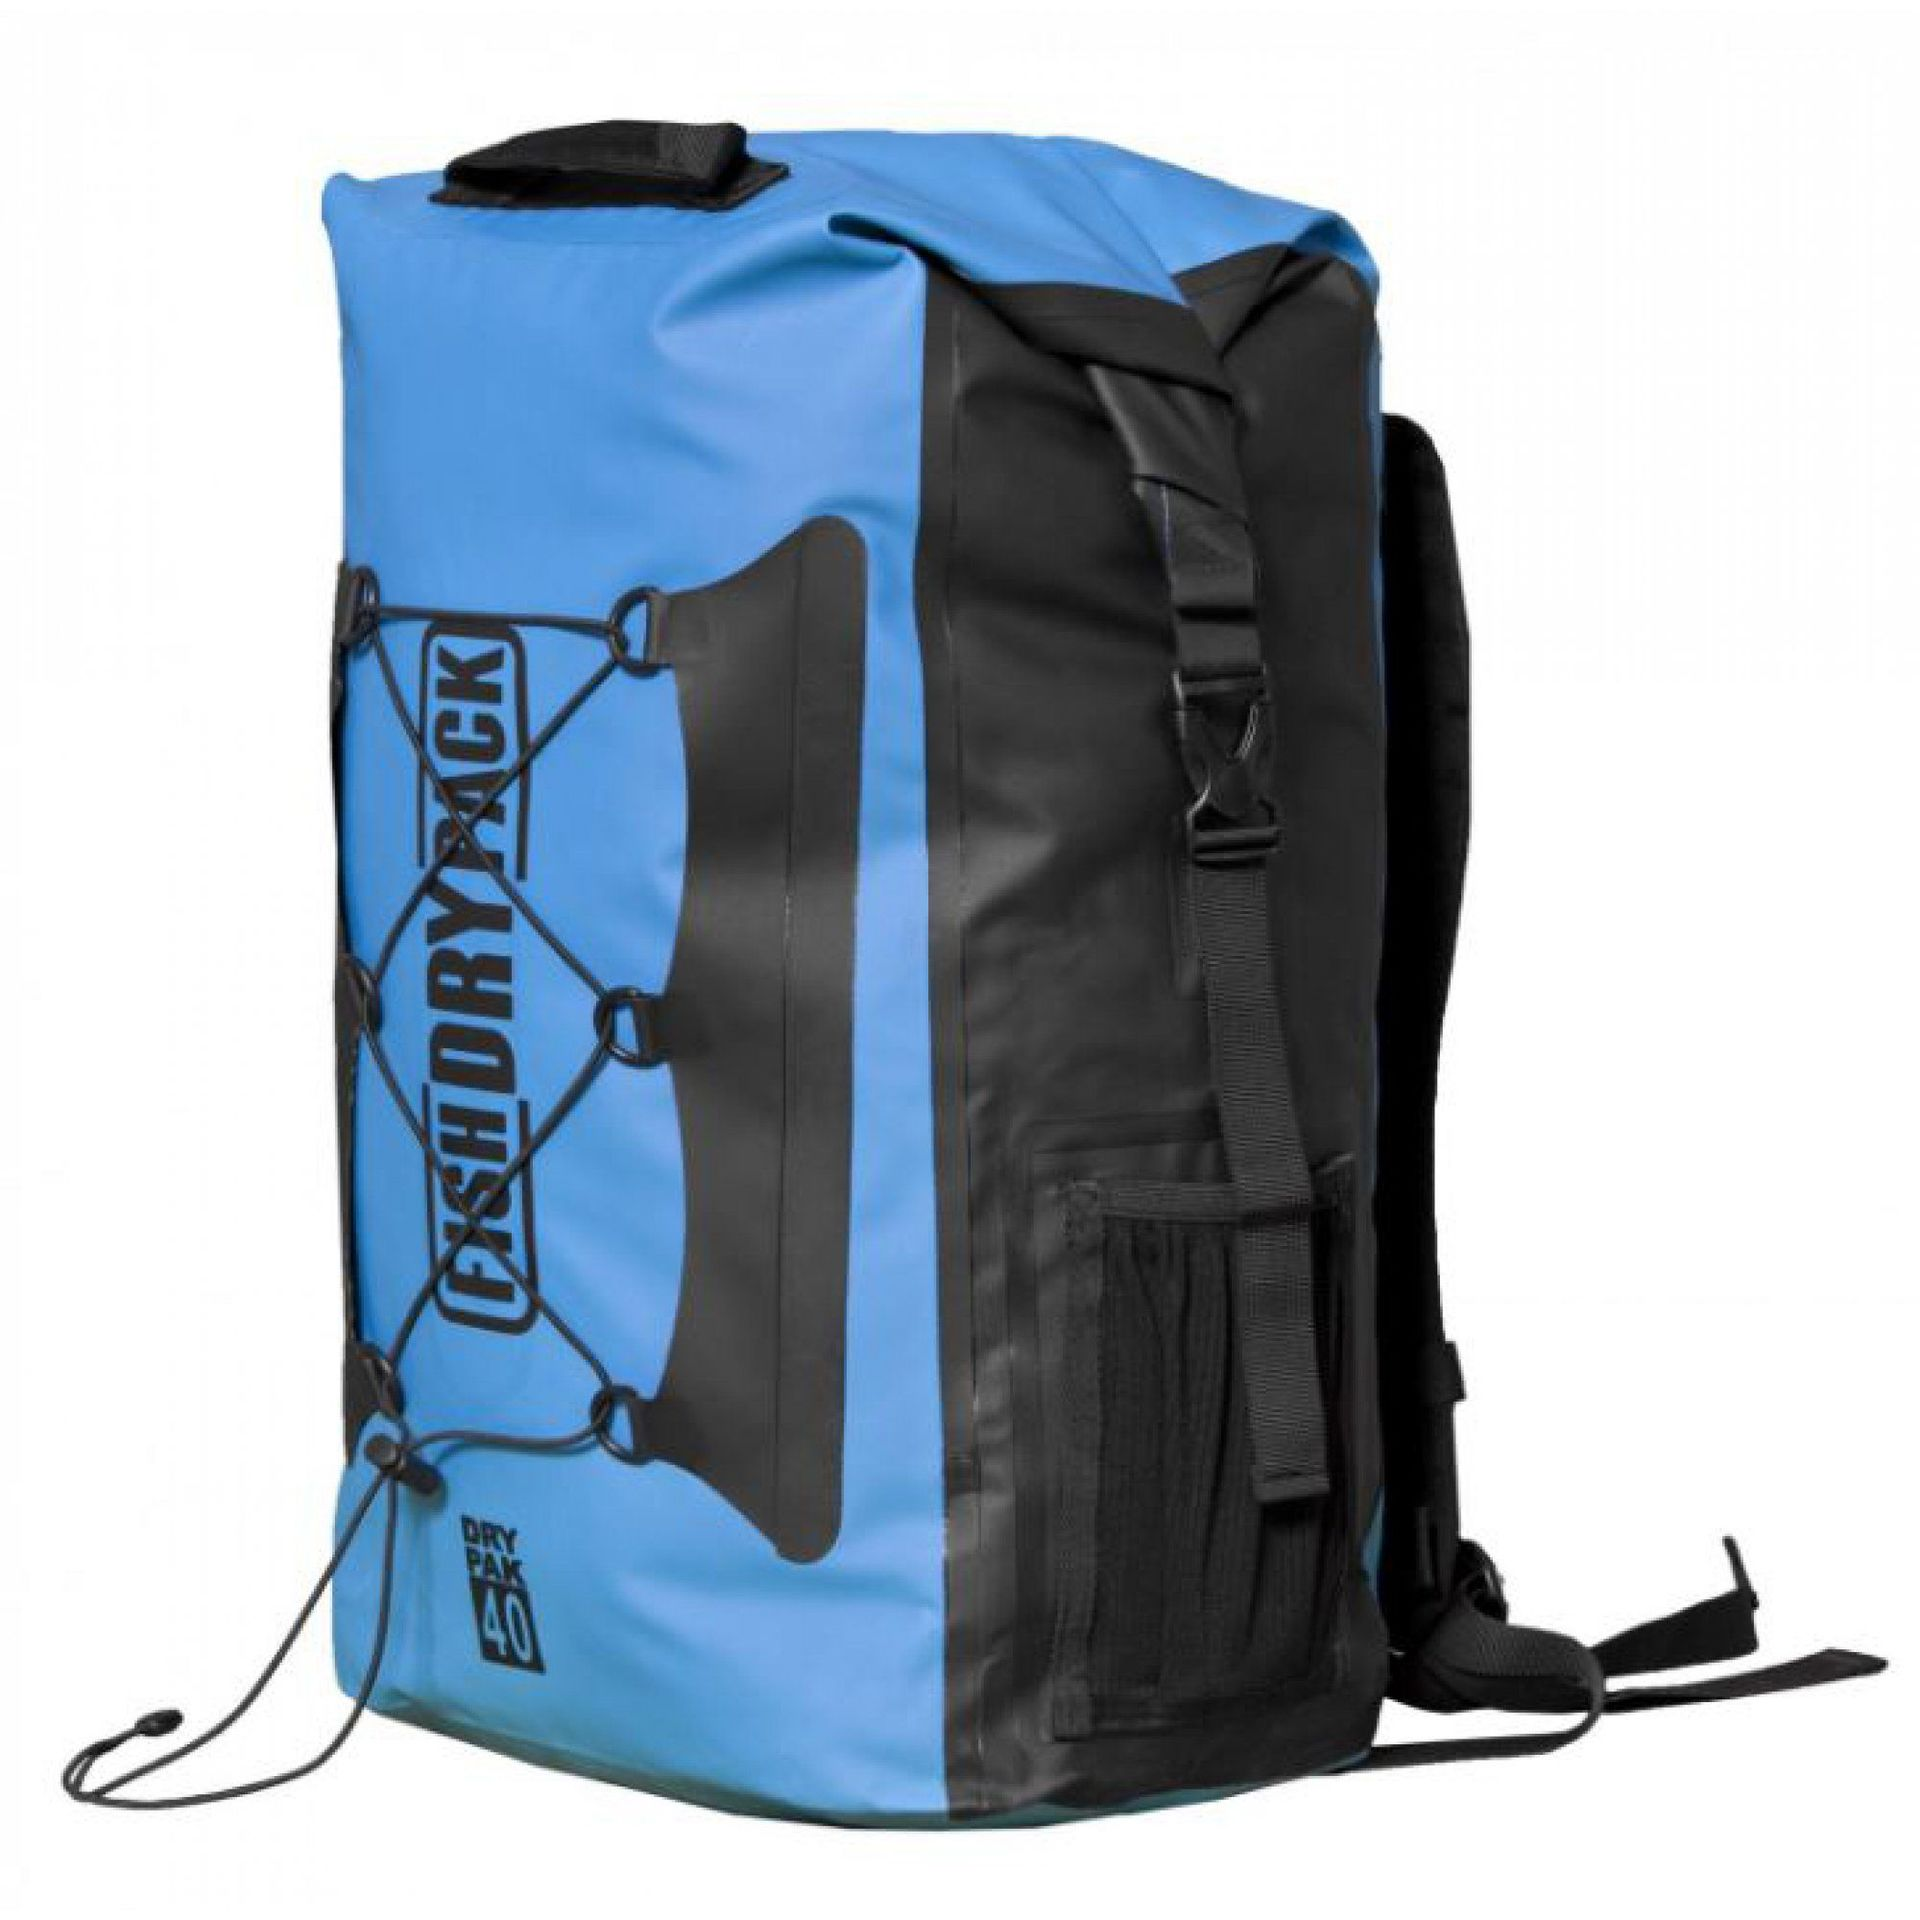 PLECAK FISH SKATEBOARDS FISH DRY PACK EXPLORER 20L BLUE 3